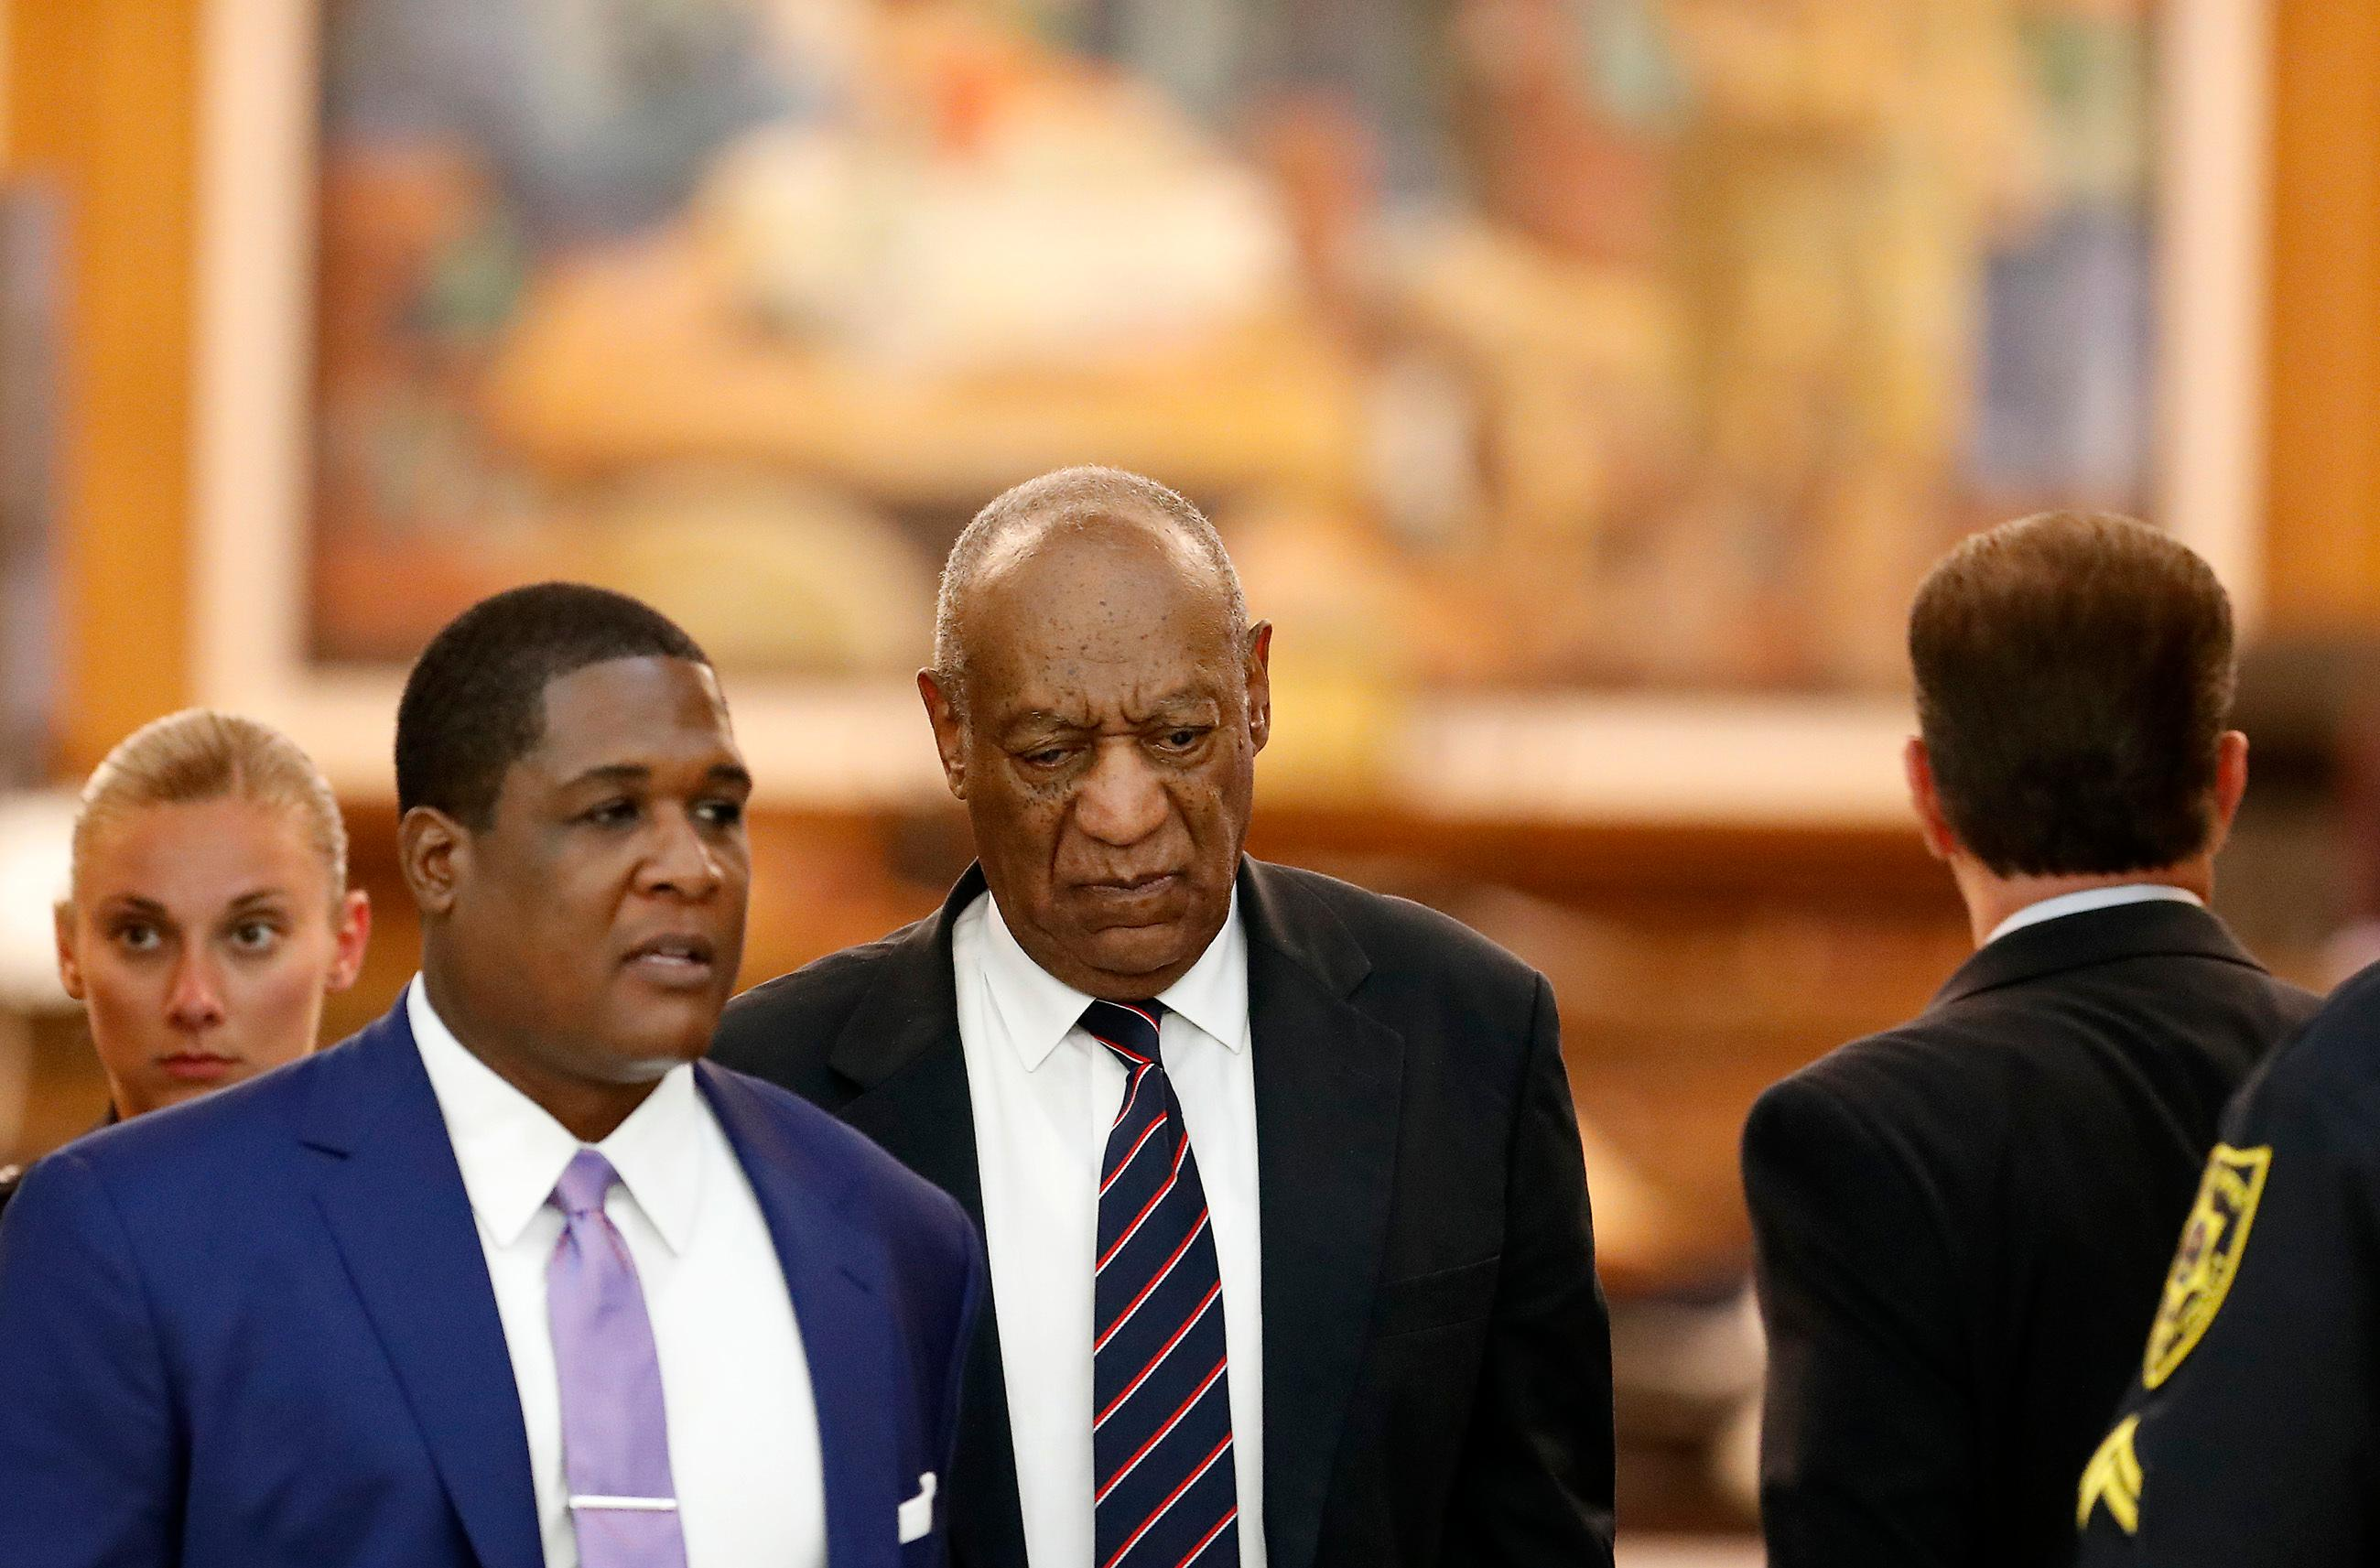 Andrew Wyatt, left, leads Bill Cosby, center, as they leave the Montgomery County Courthouse during Cosby's sexual assault trial in Norristown, Pa., Monday, June 12, 2017. (David Maialetti/The Philadelphia Inquirer via AP, Pool)